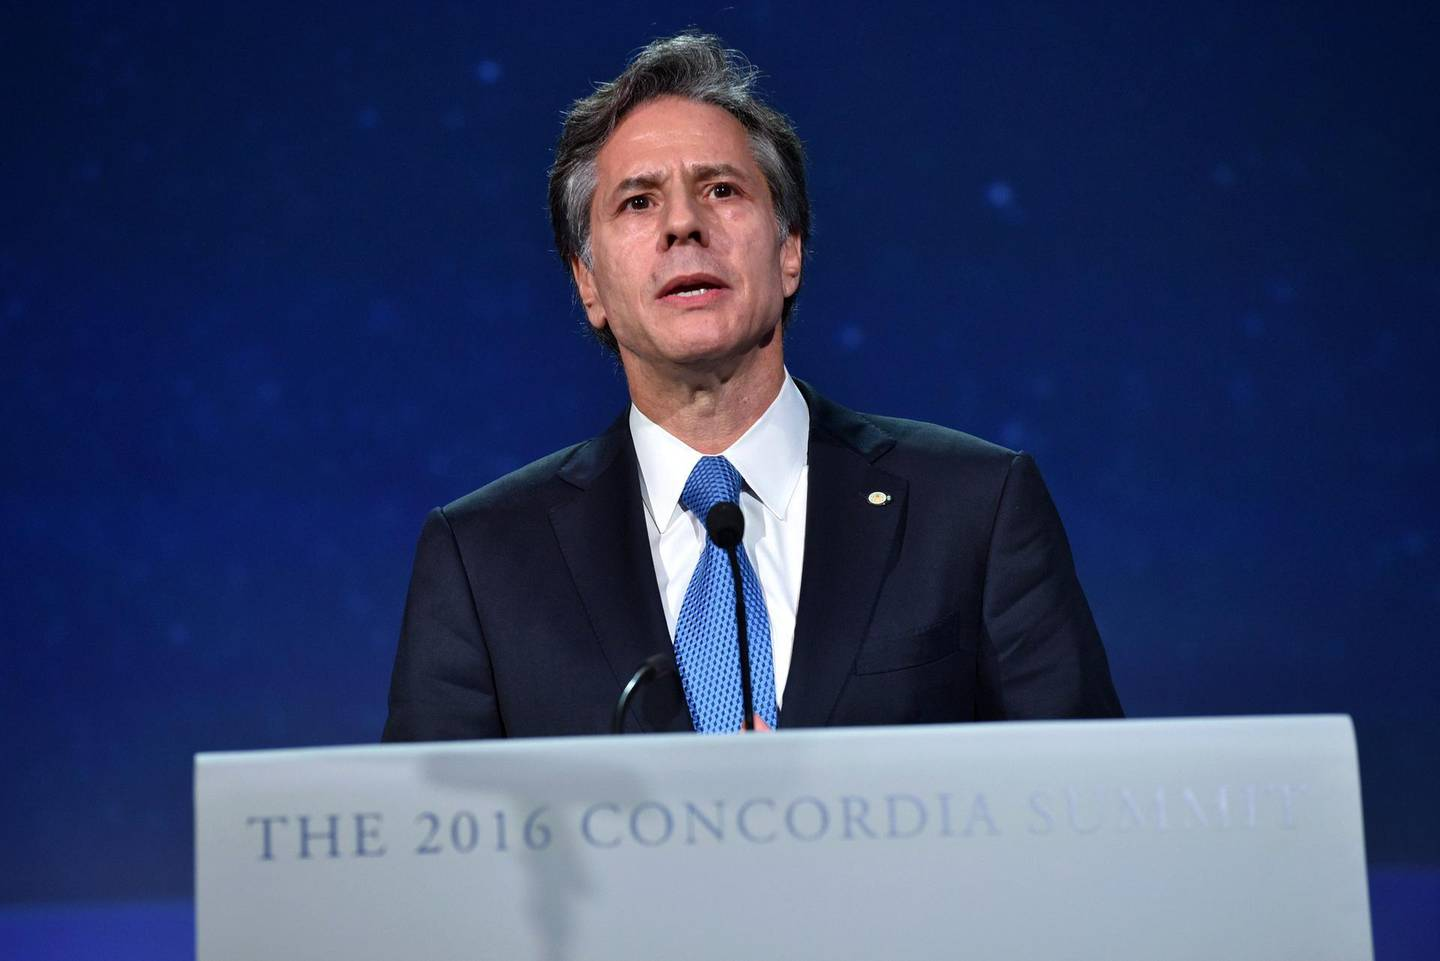 NEW YORK, NY - SEPTEMBER 19: United States Deputy Secretary of State and the former Deputy National Security Advisor for President Barack Obama Anthony Blinken speaks at the 2016 Concordia Summit - Day 1 at Grand Hyatt New York on September 19, 2016 in New York City.   Bryan Bedder/Getty Images for Concordia Summit/AFP